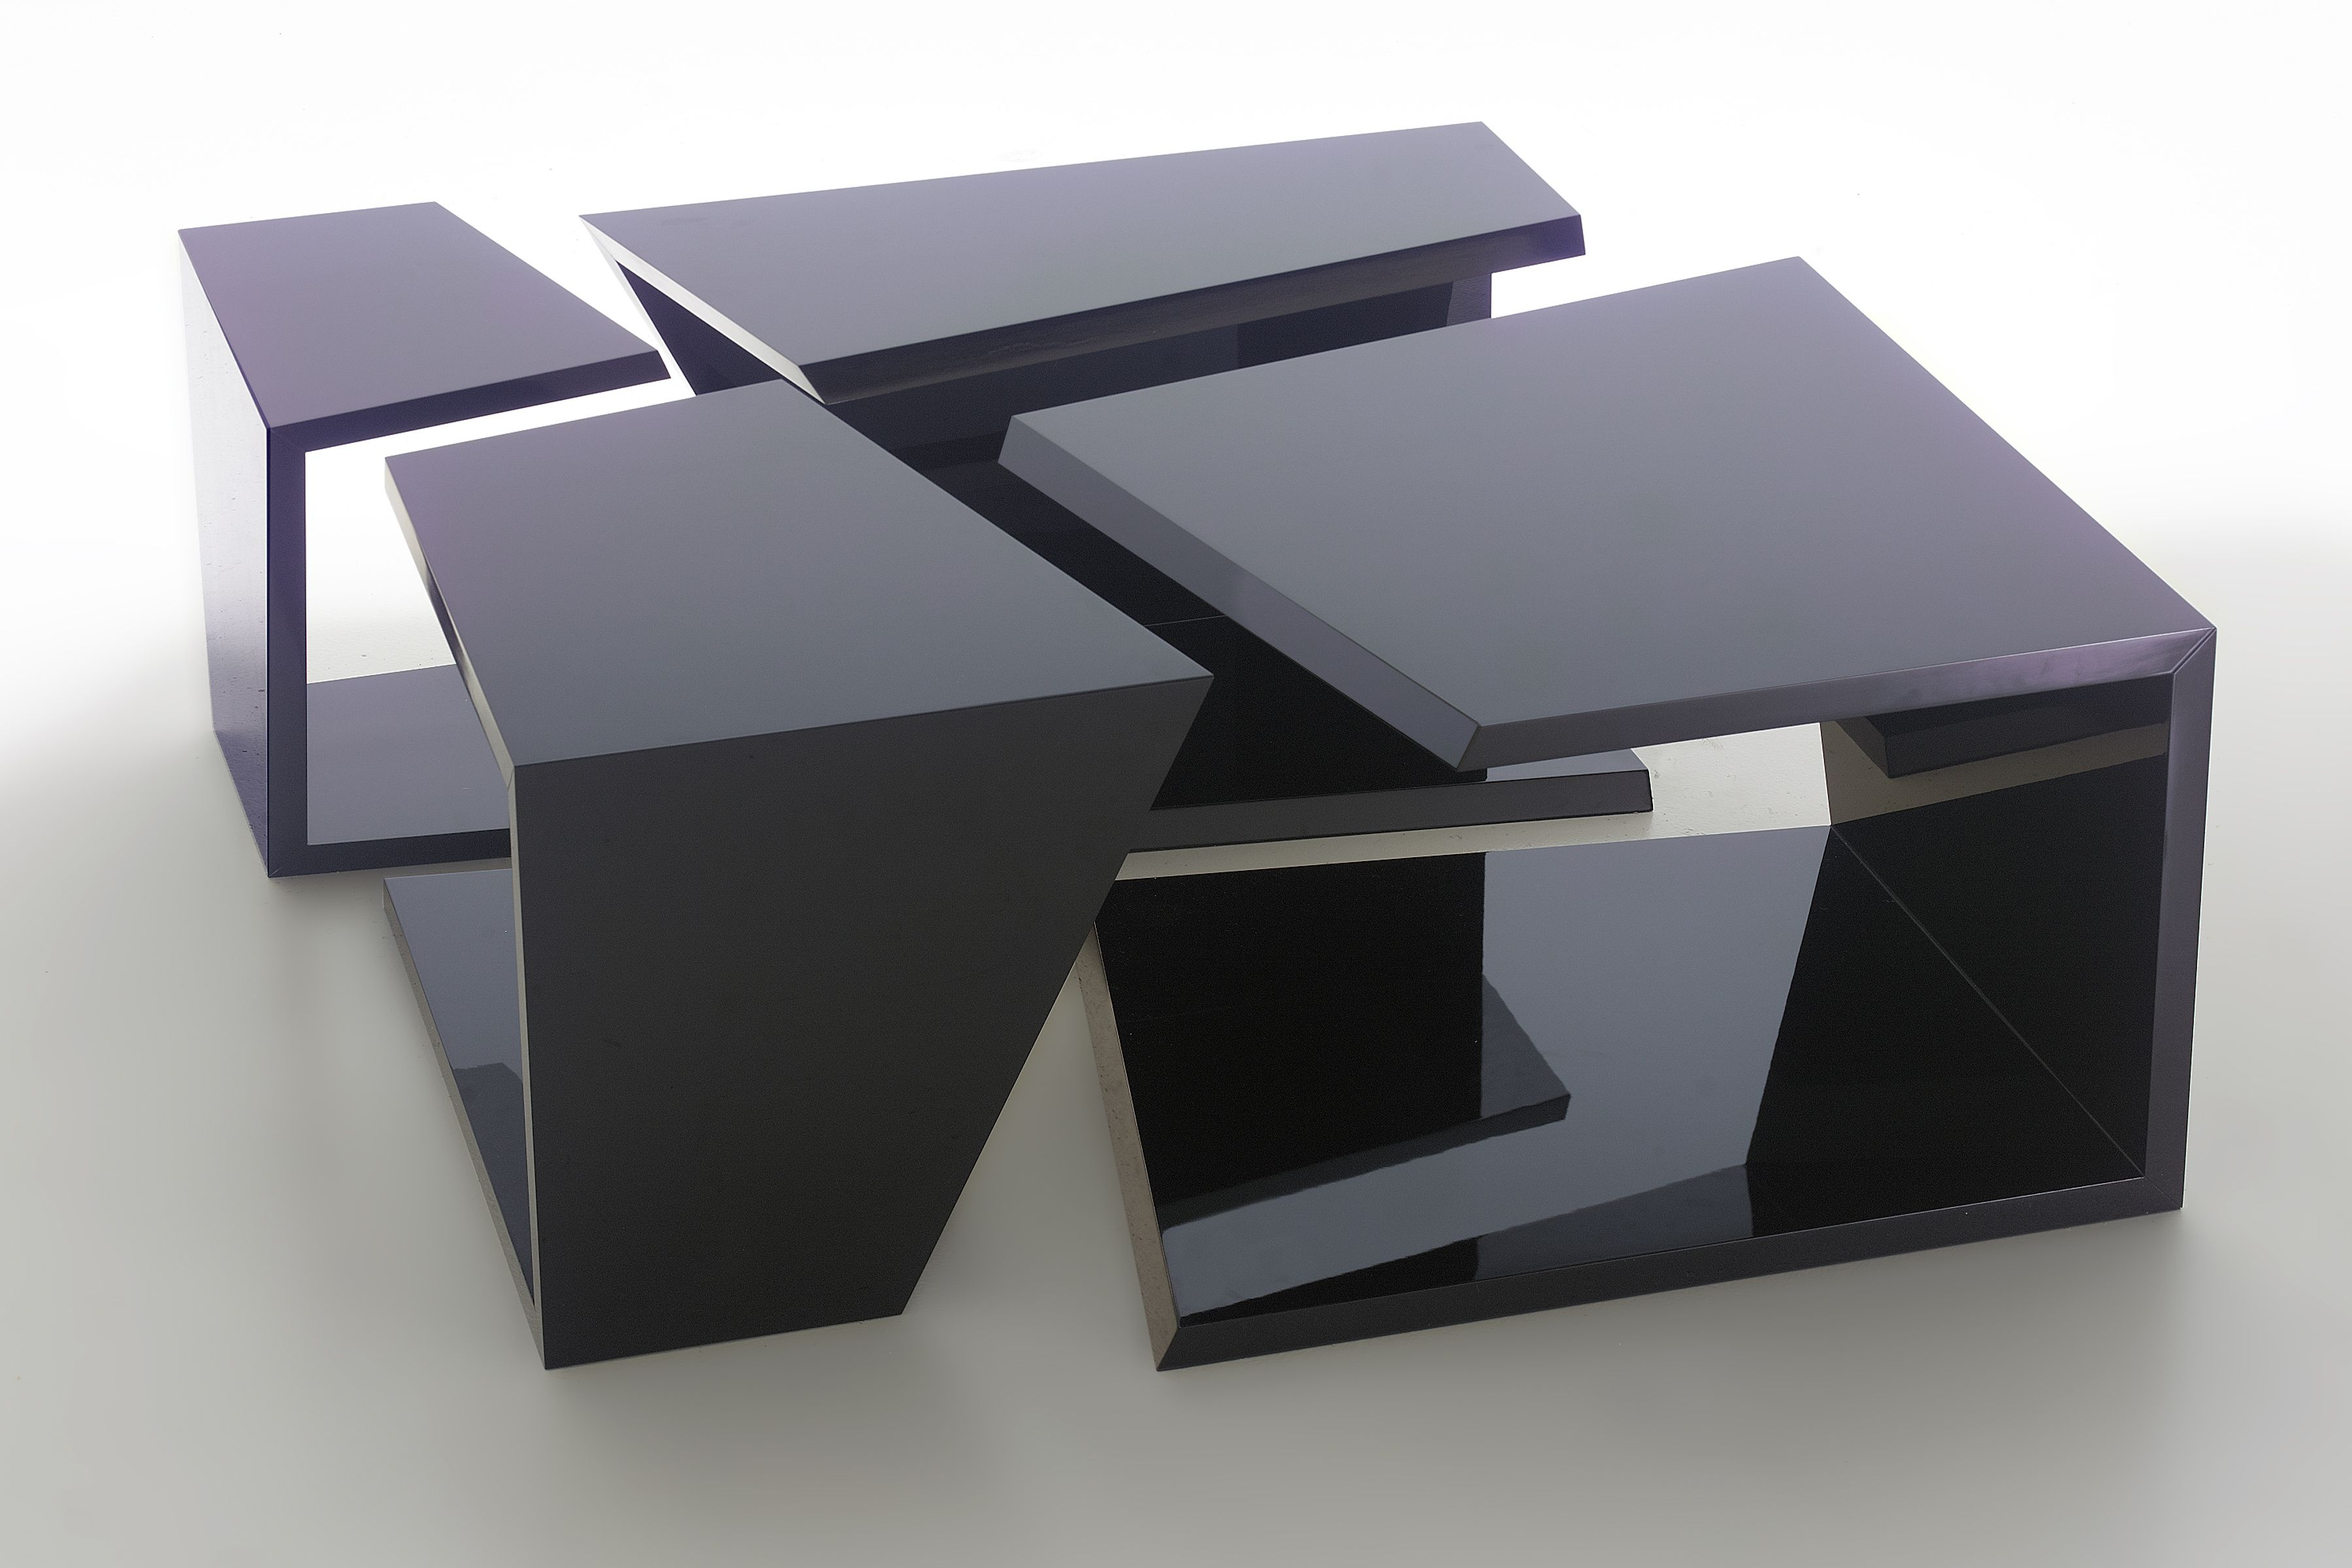 Slicebox Design By Vw Bs Limited Edition Of 100 Furniture  # Meuble Avec Vw